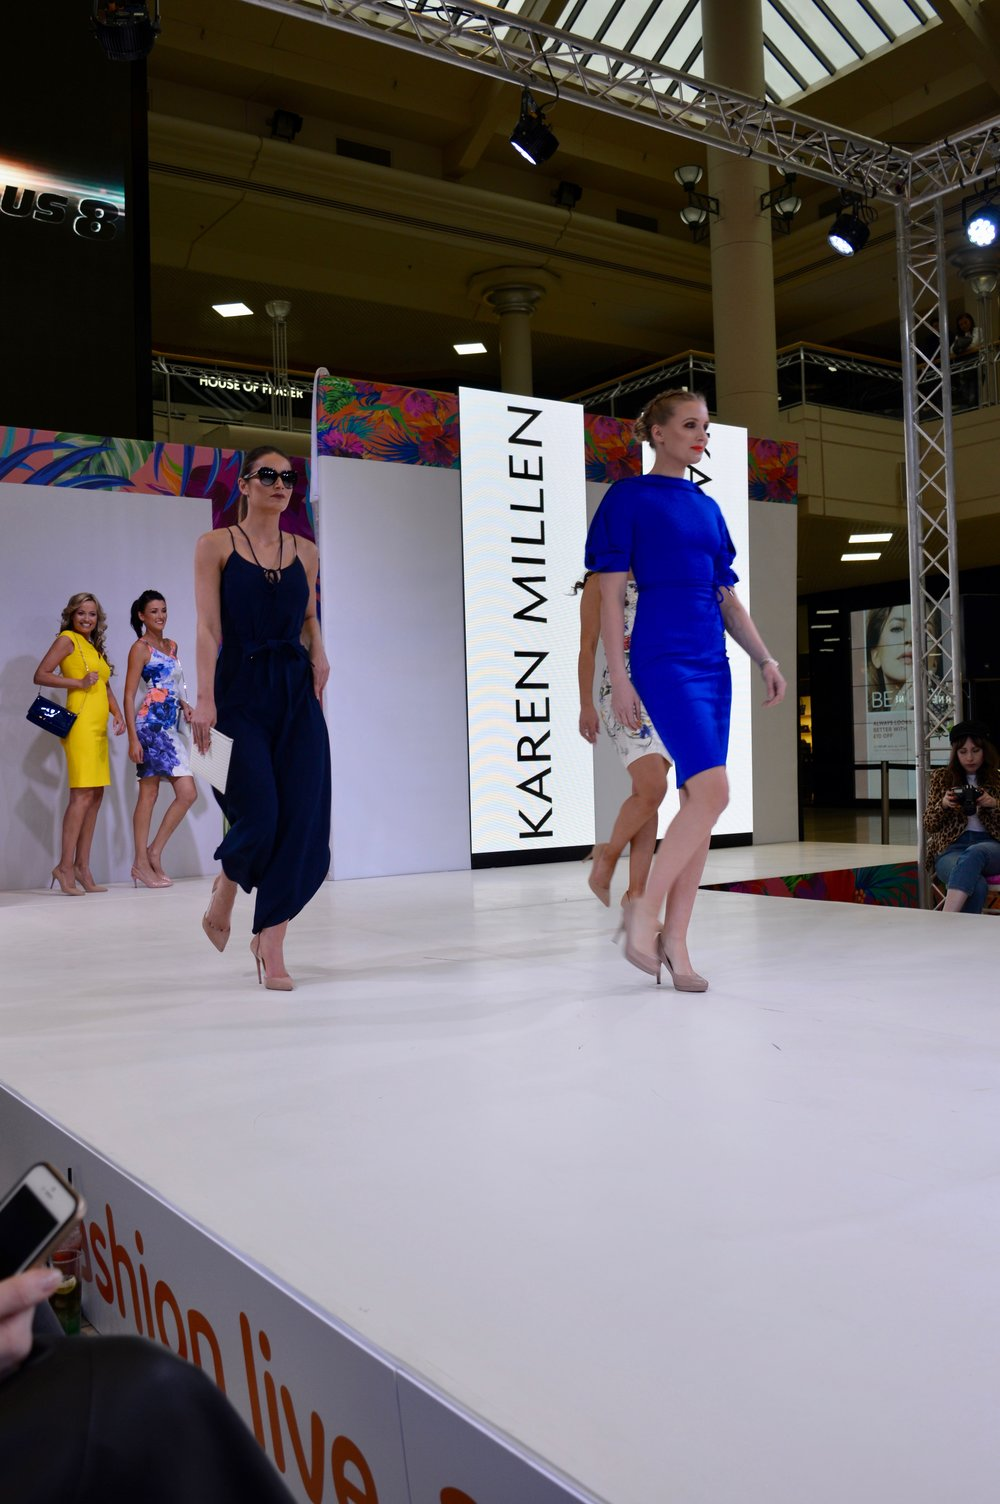 karen_millen_colour_popping_intu_metrocenter_fashion_show_summer_event_flamingo_theme_elle_blonde_luxury_lifestyle_blog